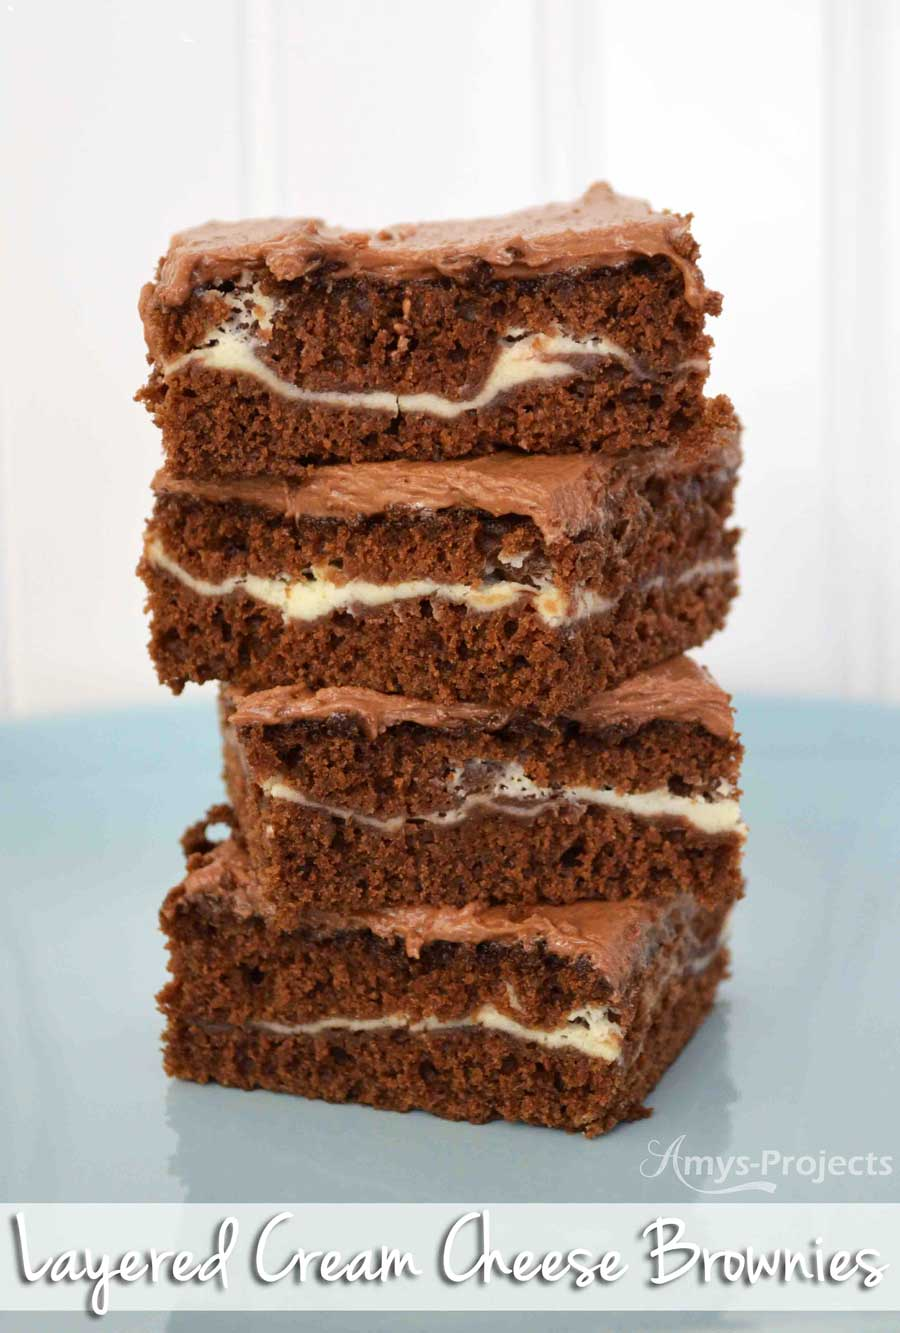 These are the best brownies ever, layered cream cheese brownies. You'll have dreams about these babies!